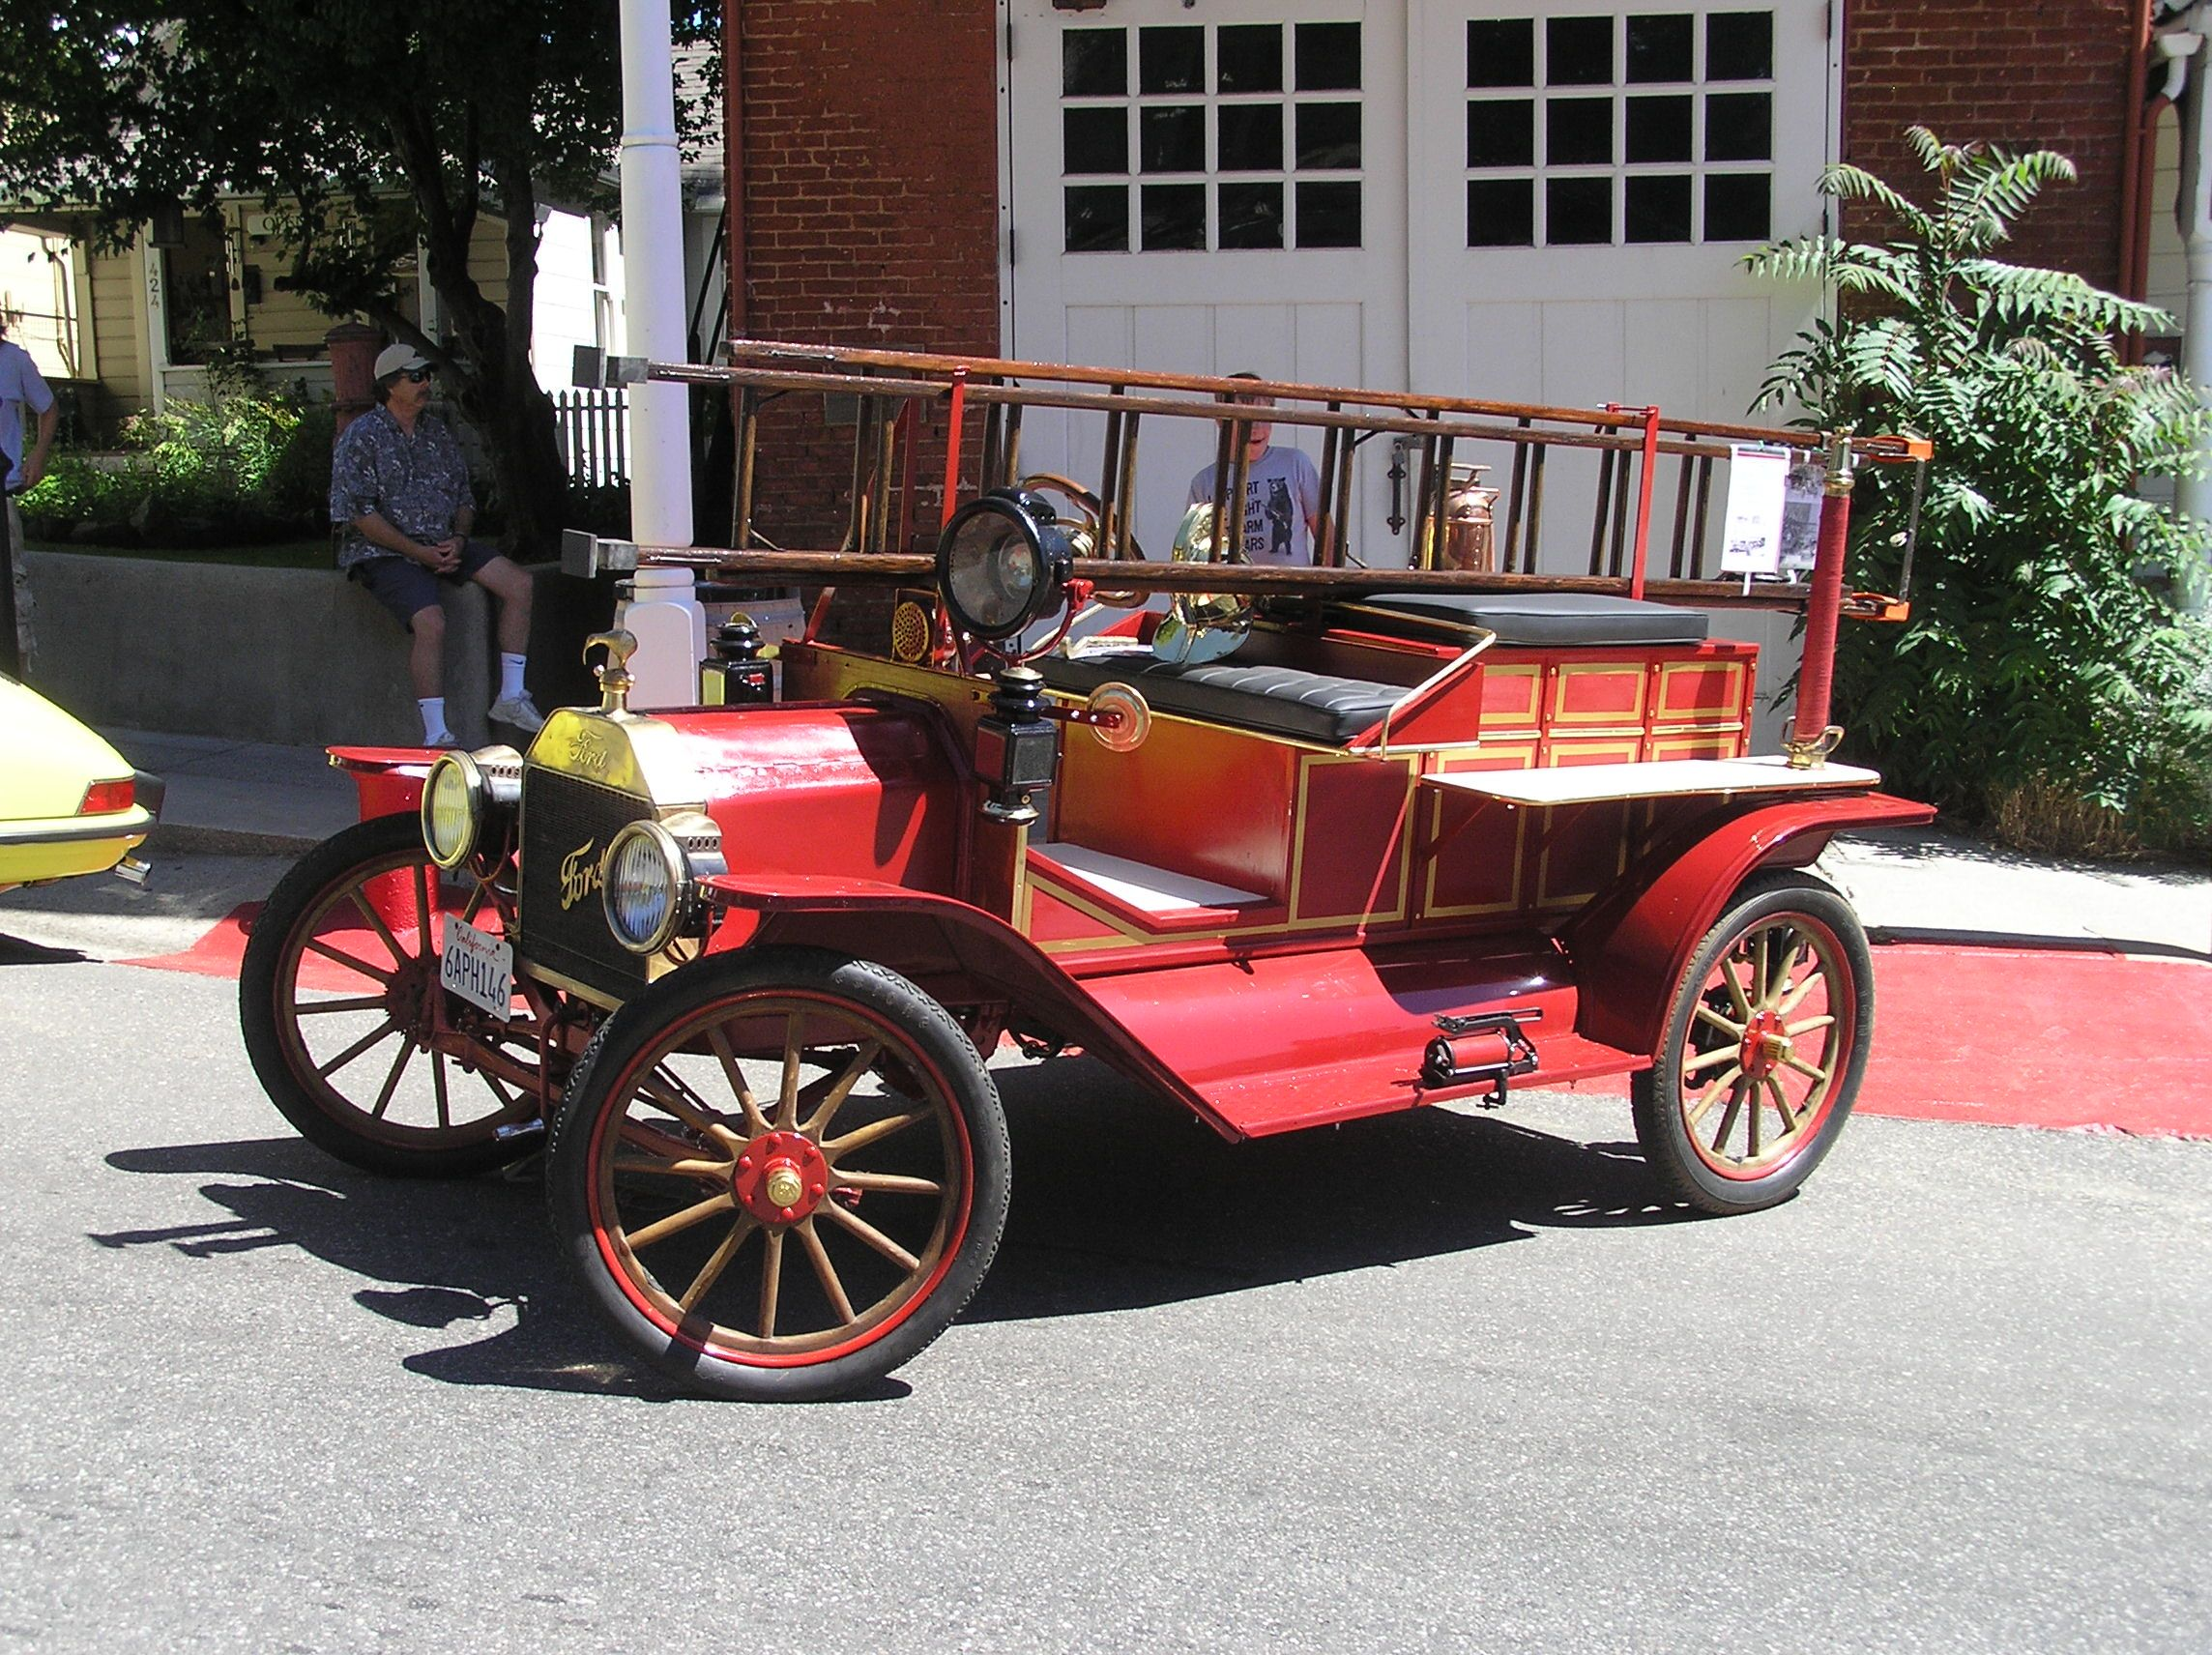 Circa 1915 Ford Fire Truck By Way Of New Zealand Fire Trucks Fire Engine Fire Equipment